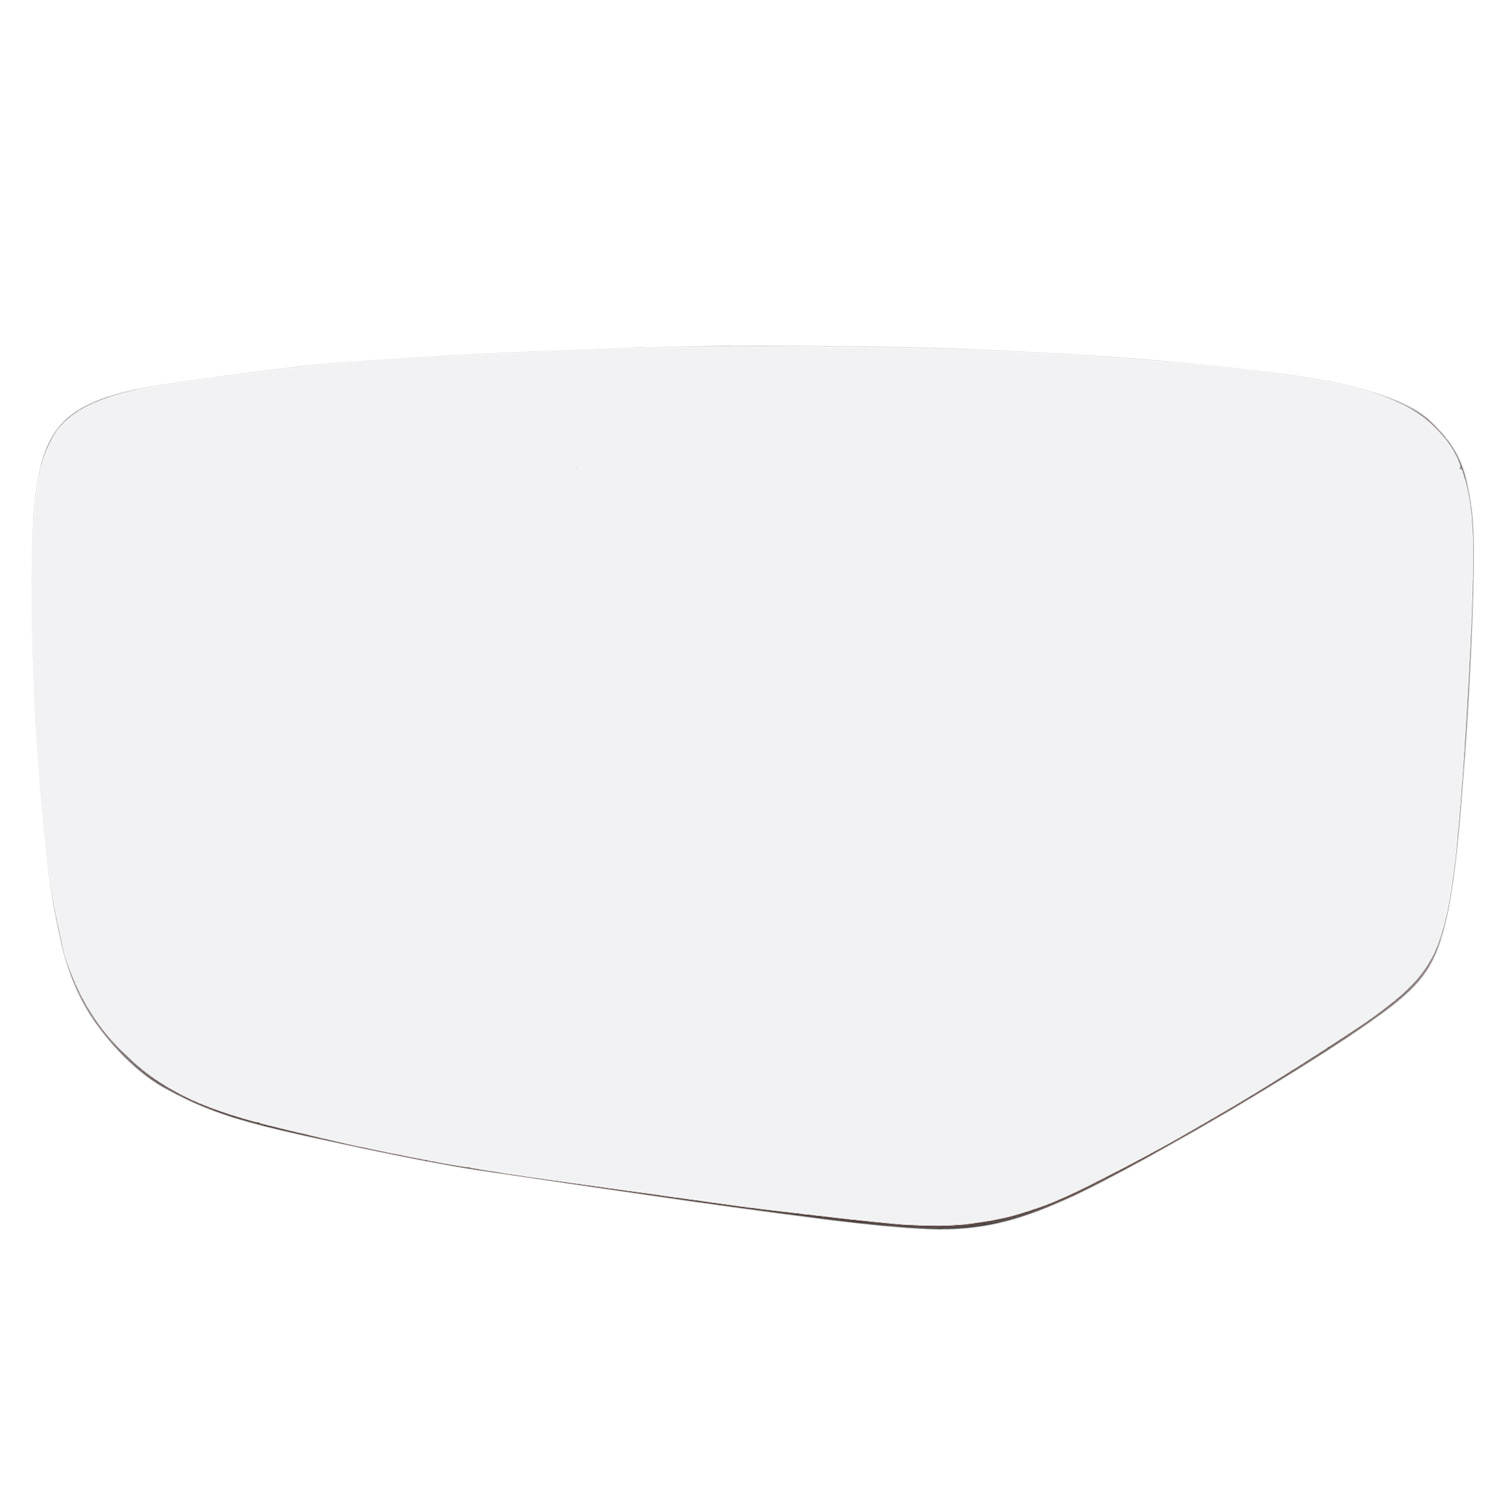 New Replacement Driver Side Mirror Glass W Backing Compatible With 1998 1999 2001 2002 Honda Accord Sold By Rugged TUFF